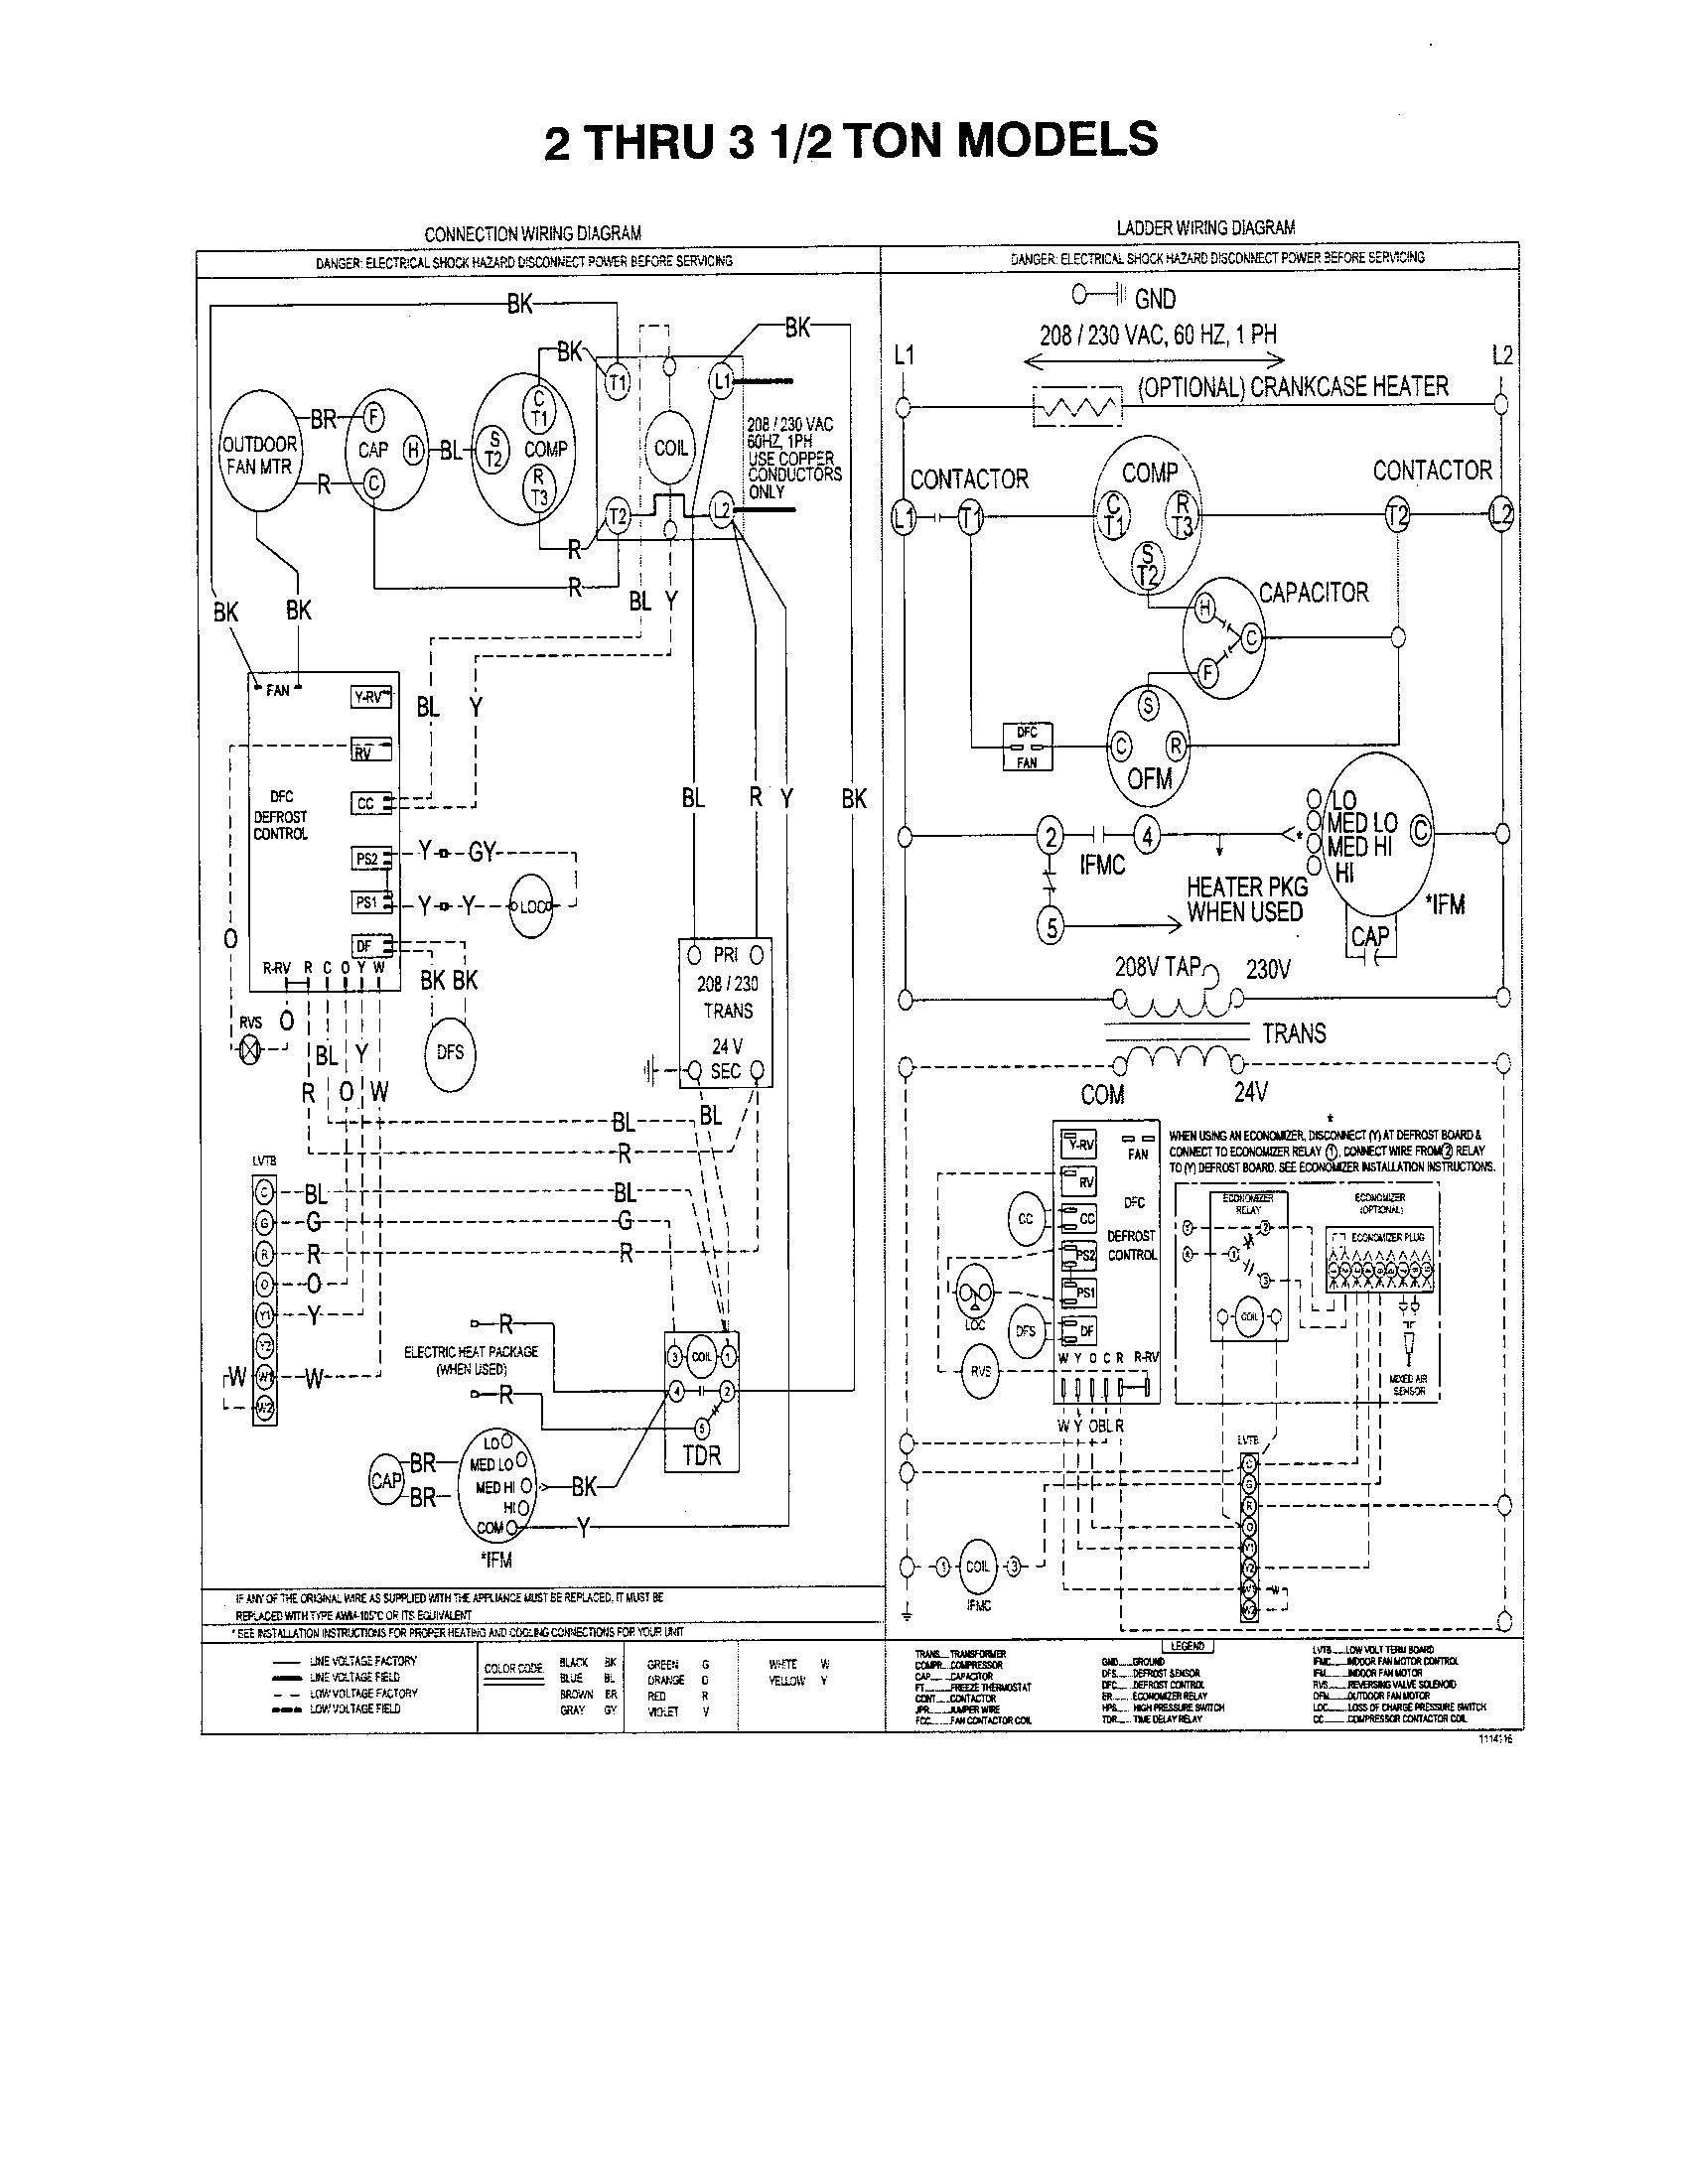 york heating and air conditioning wiring diagrams three phase motor diagram condensing unit collection